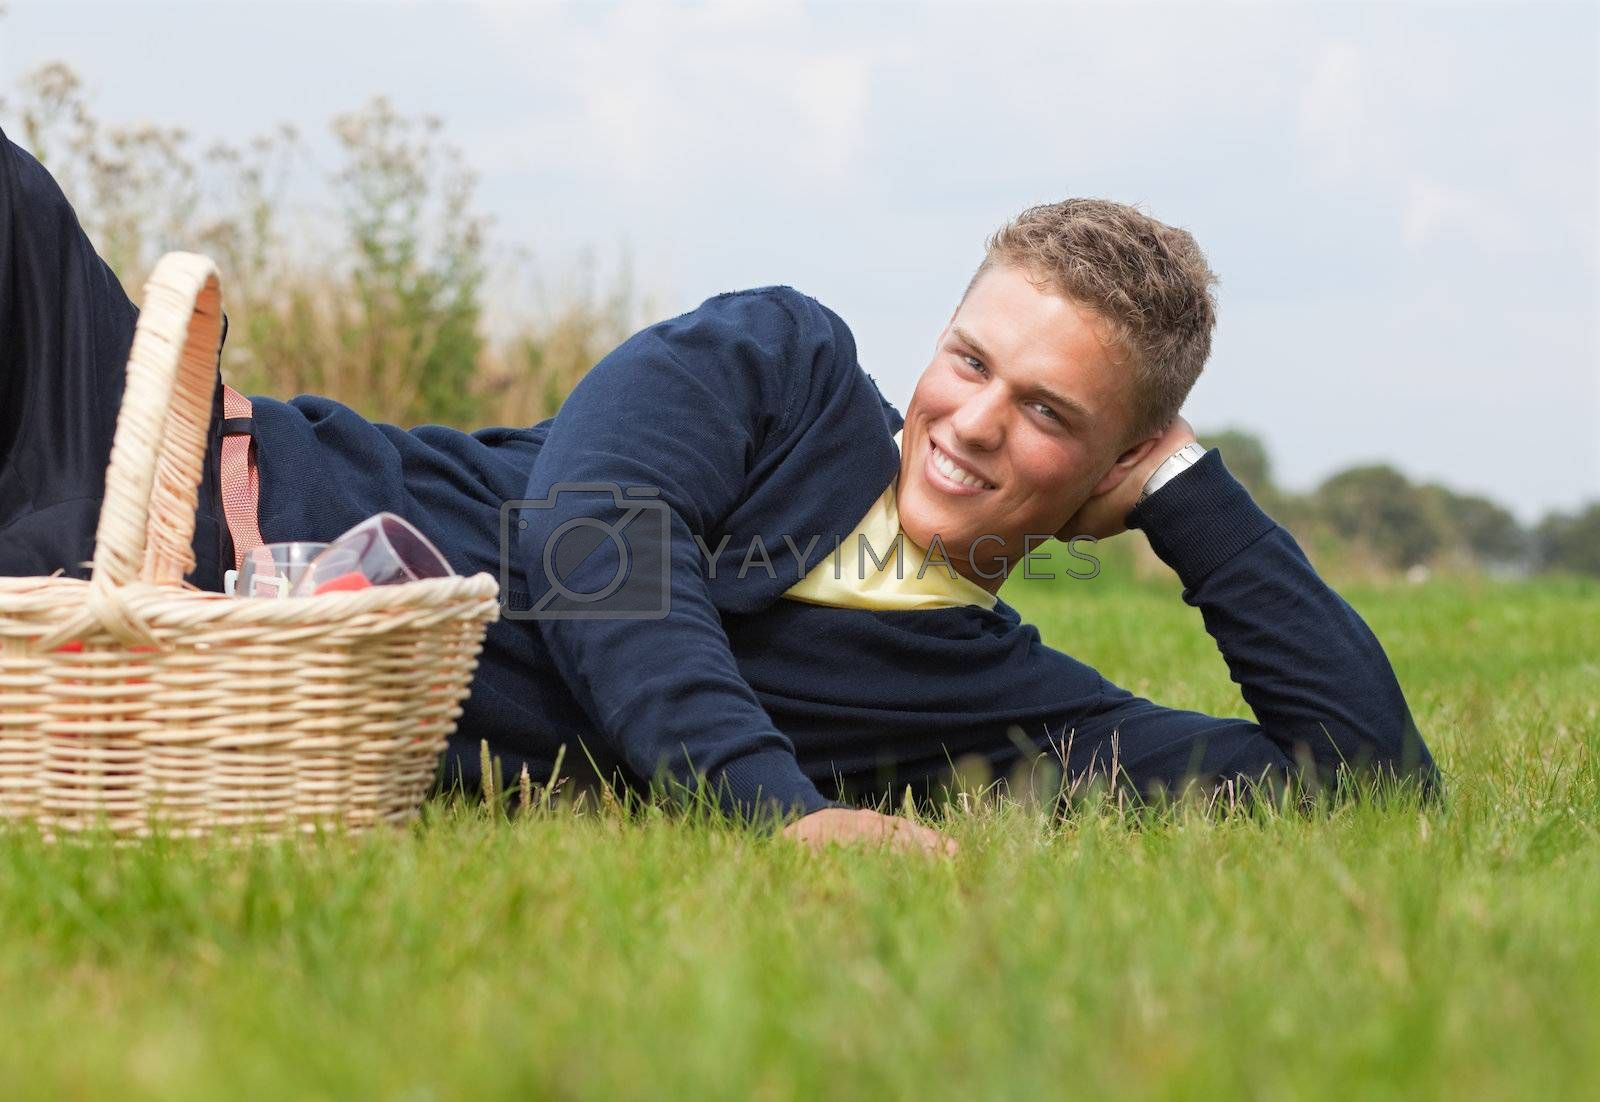 Young handsome blond lying on the grass with picnic basket